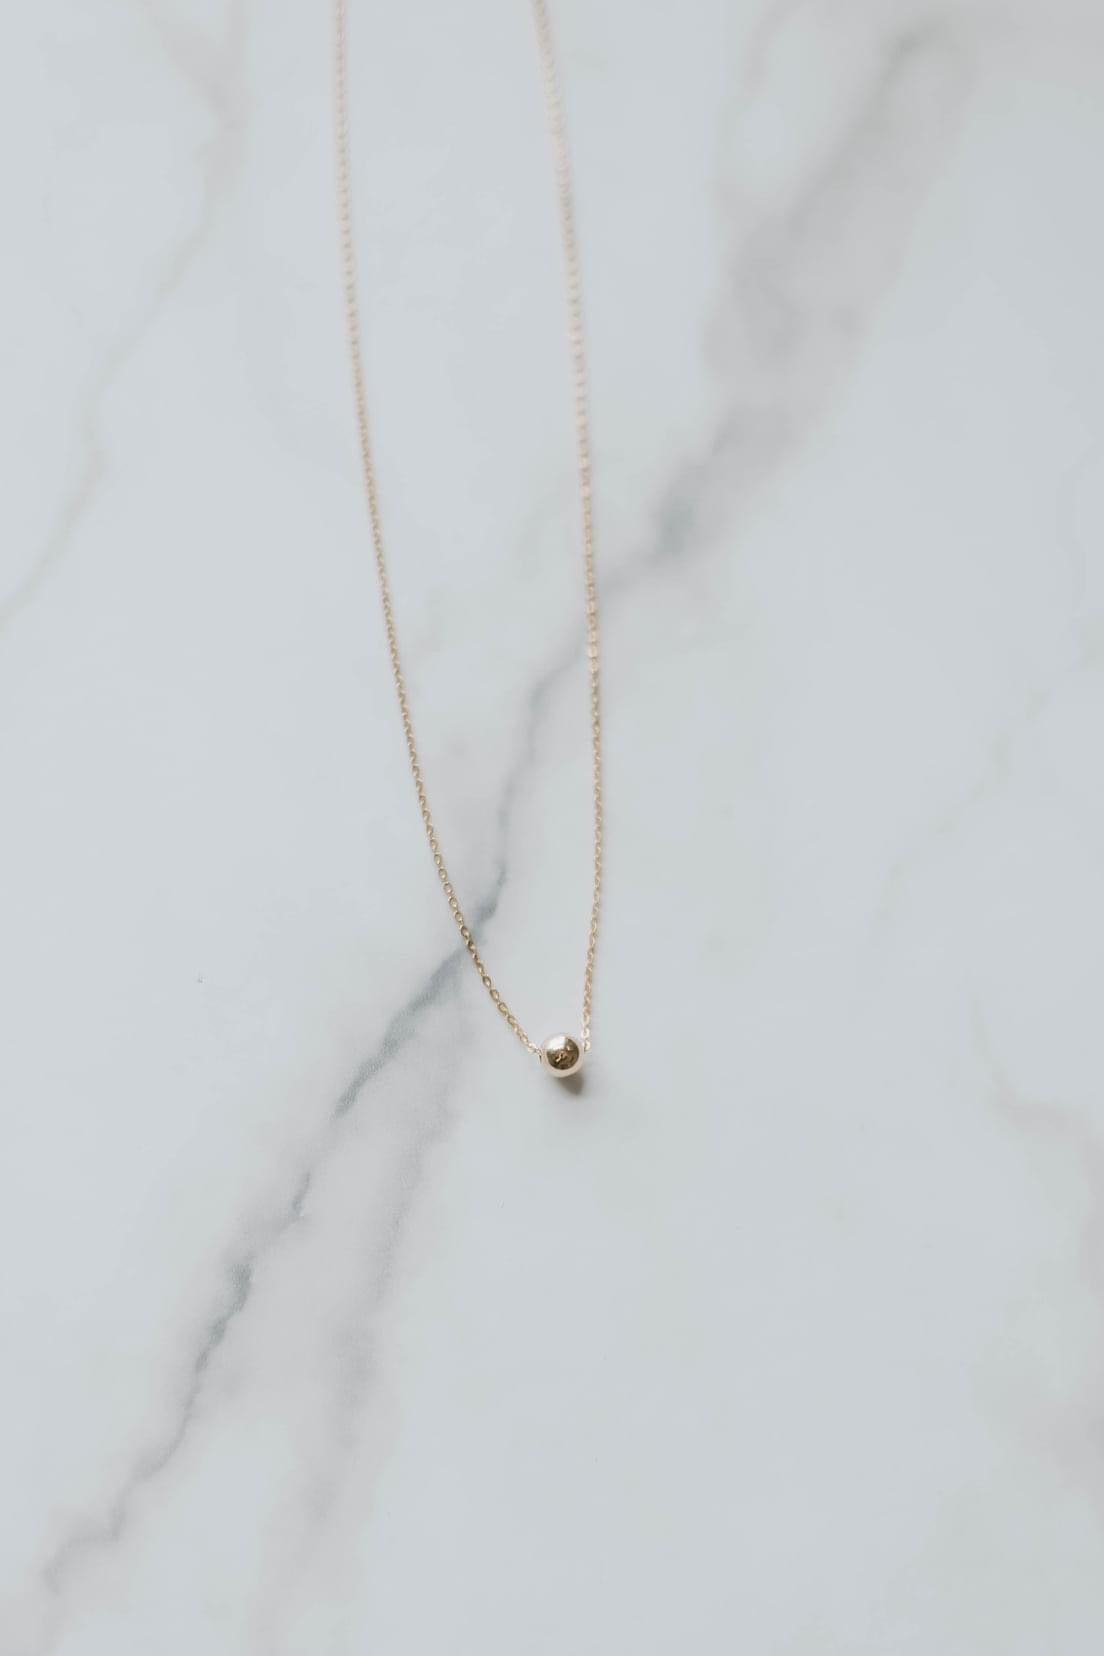 Tiny Gold Ball Necklace - 16